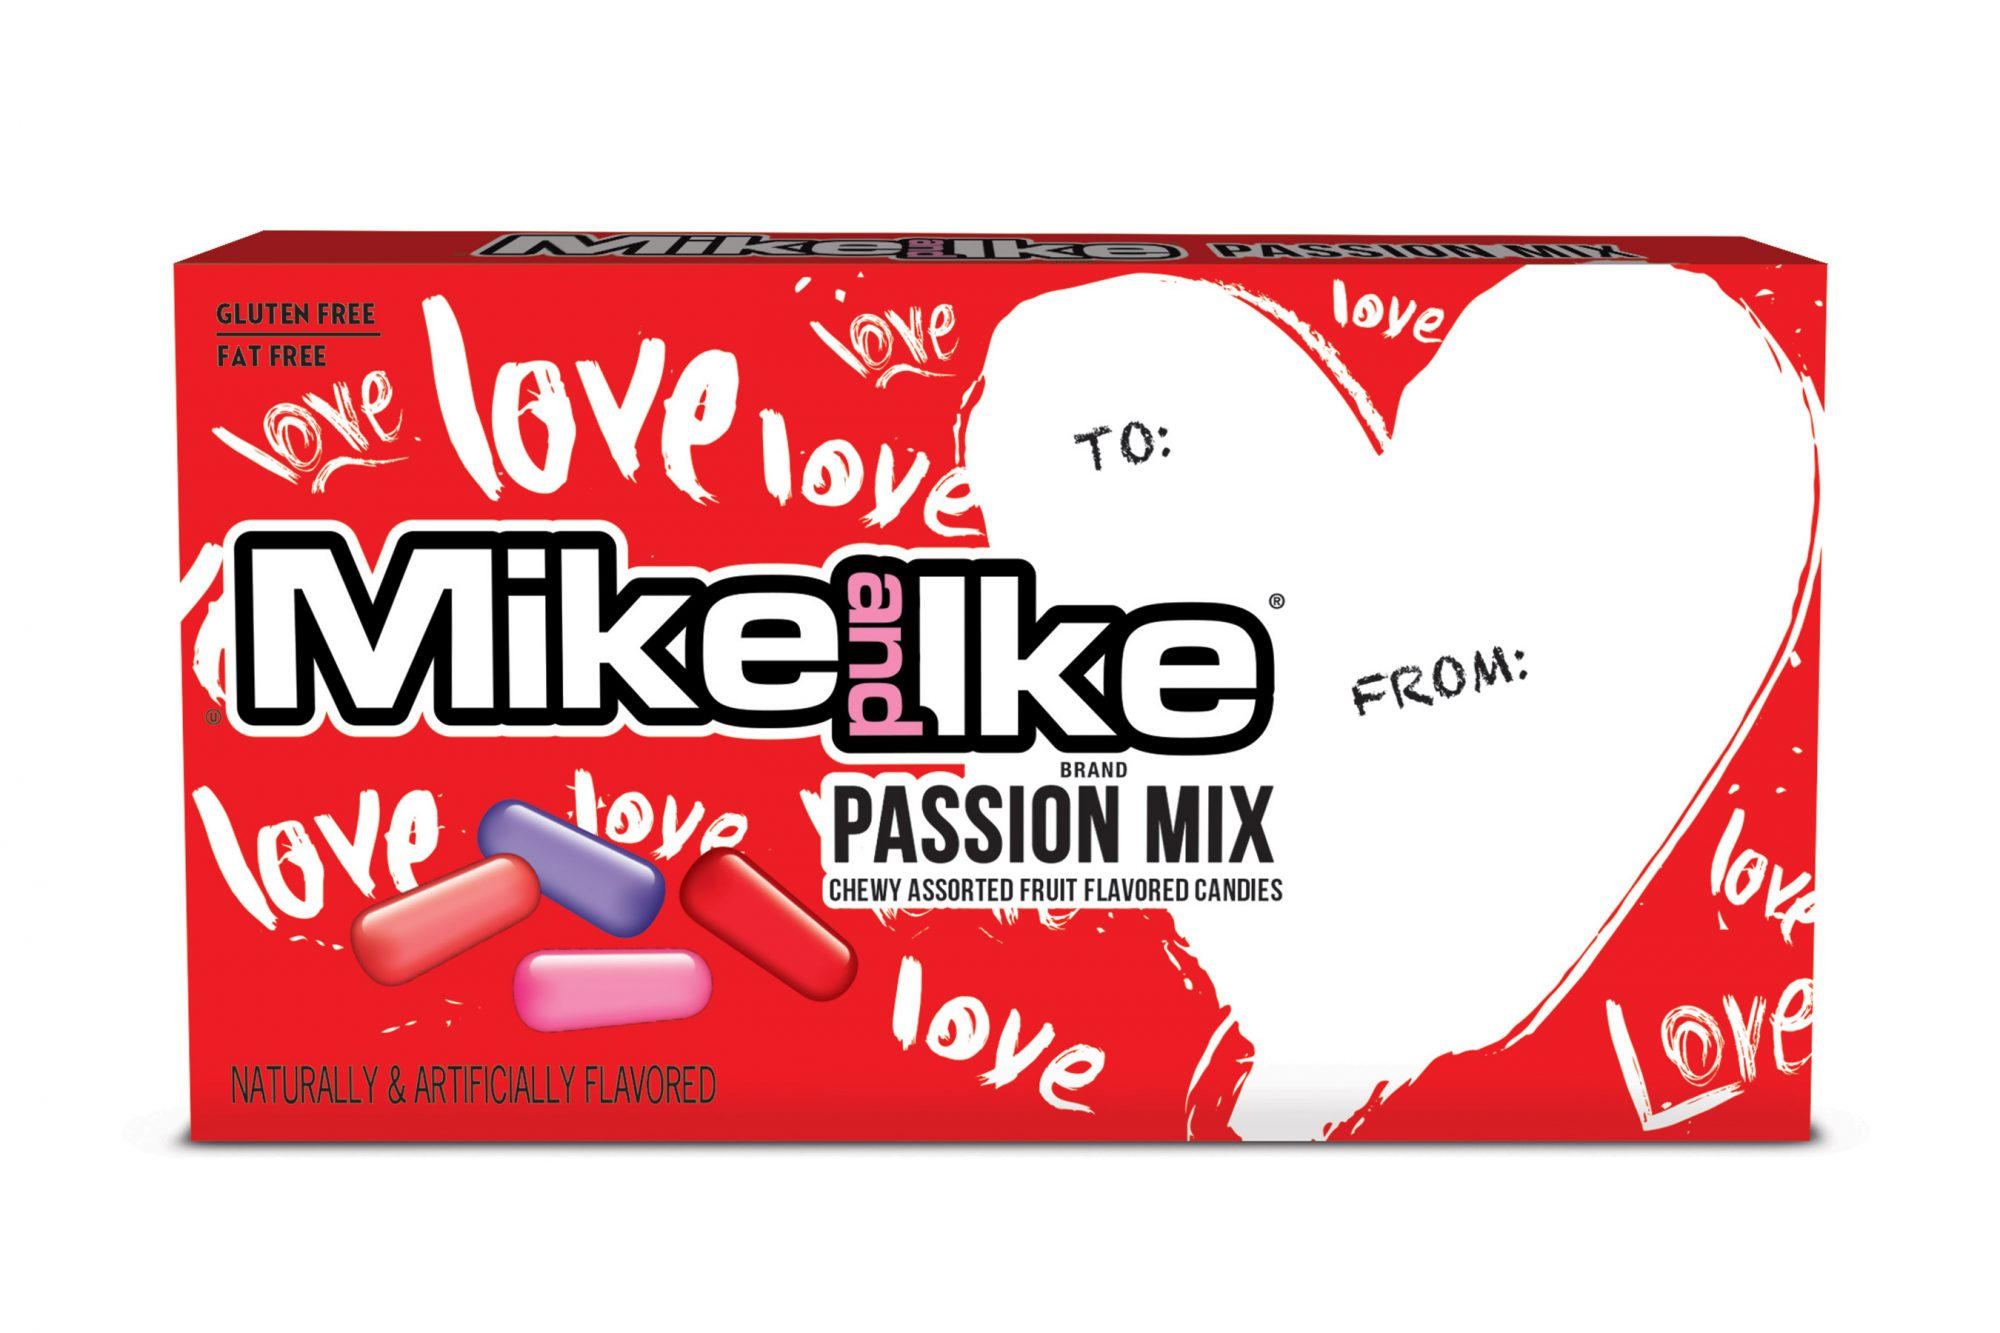 MIKE AND IKE PASSION MIX